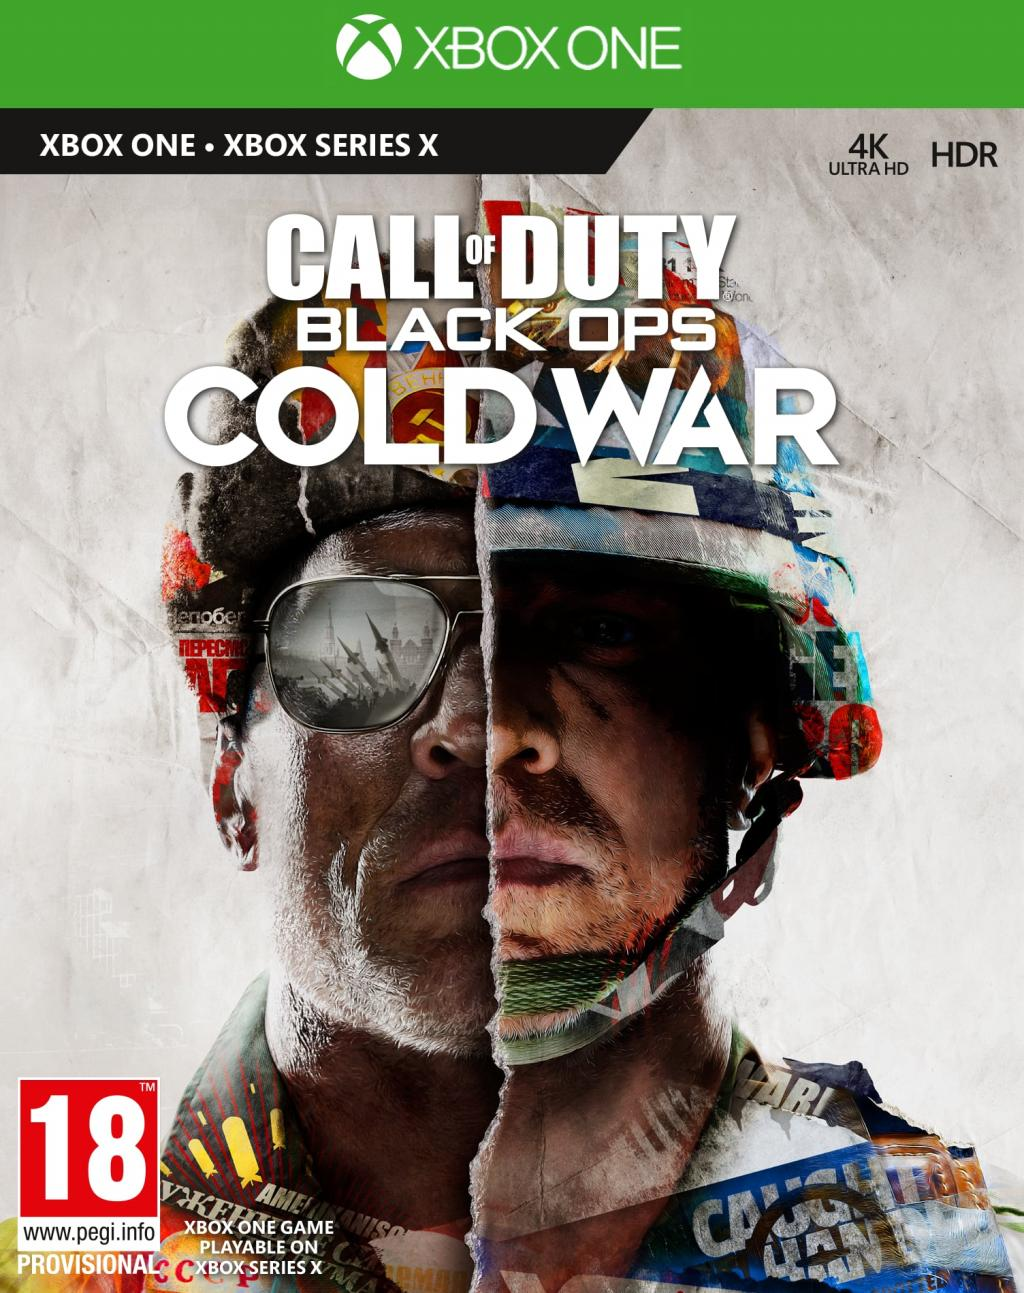 Call Of Duty Black Ops Cold War  XBOX ONE / XBOX SERIES X_1